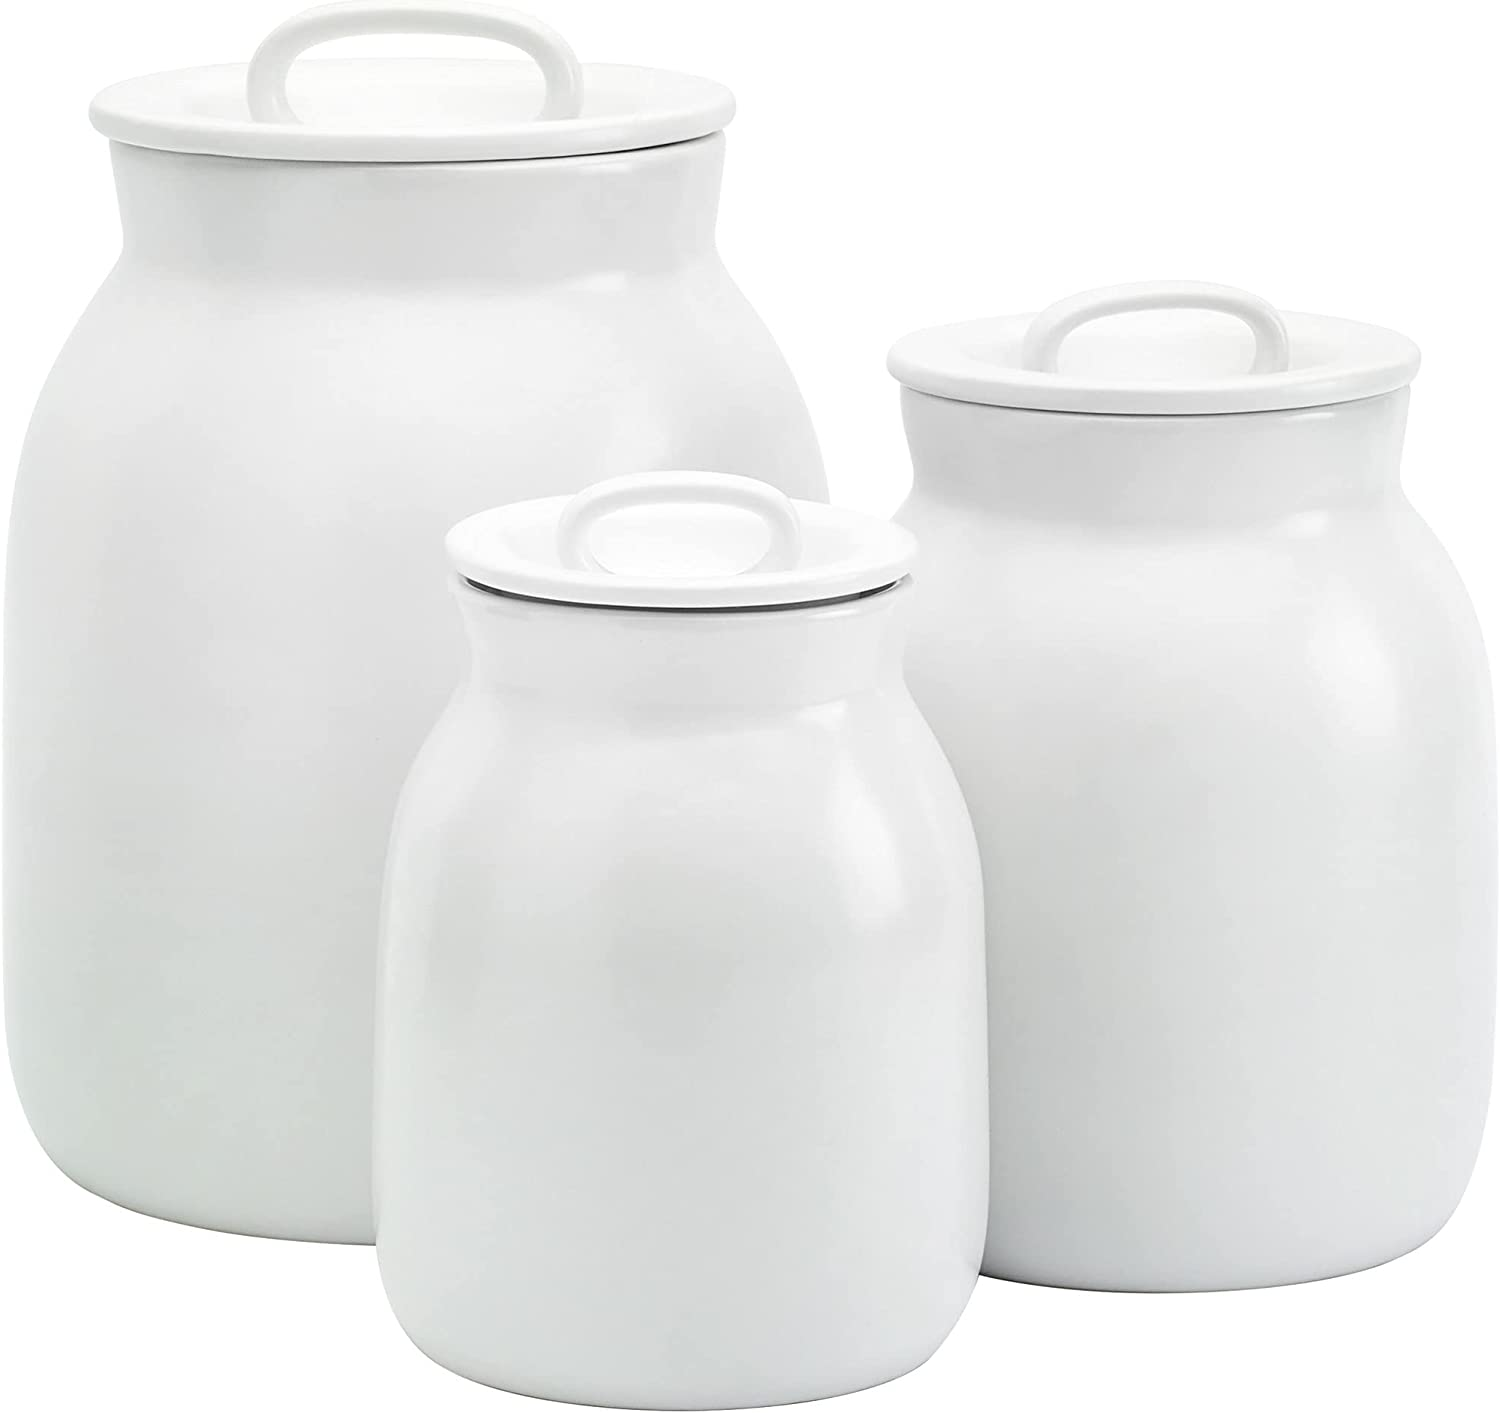 Denmark Tools for Cooks White List price Large discharge sale Ce Stoneware Satin Smooth Finished